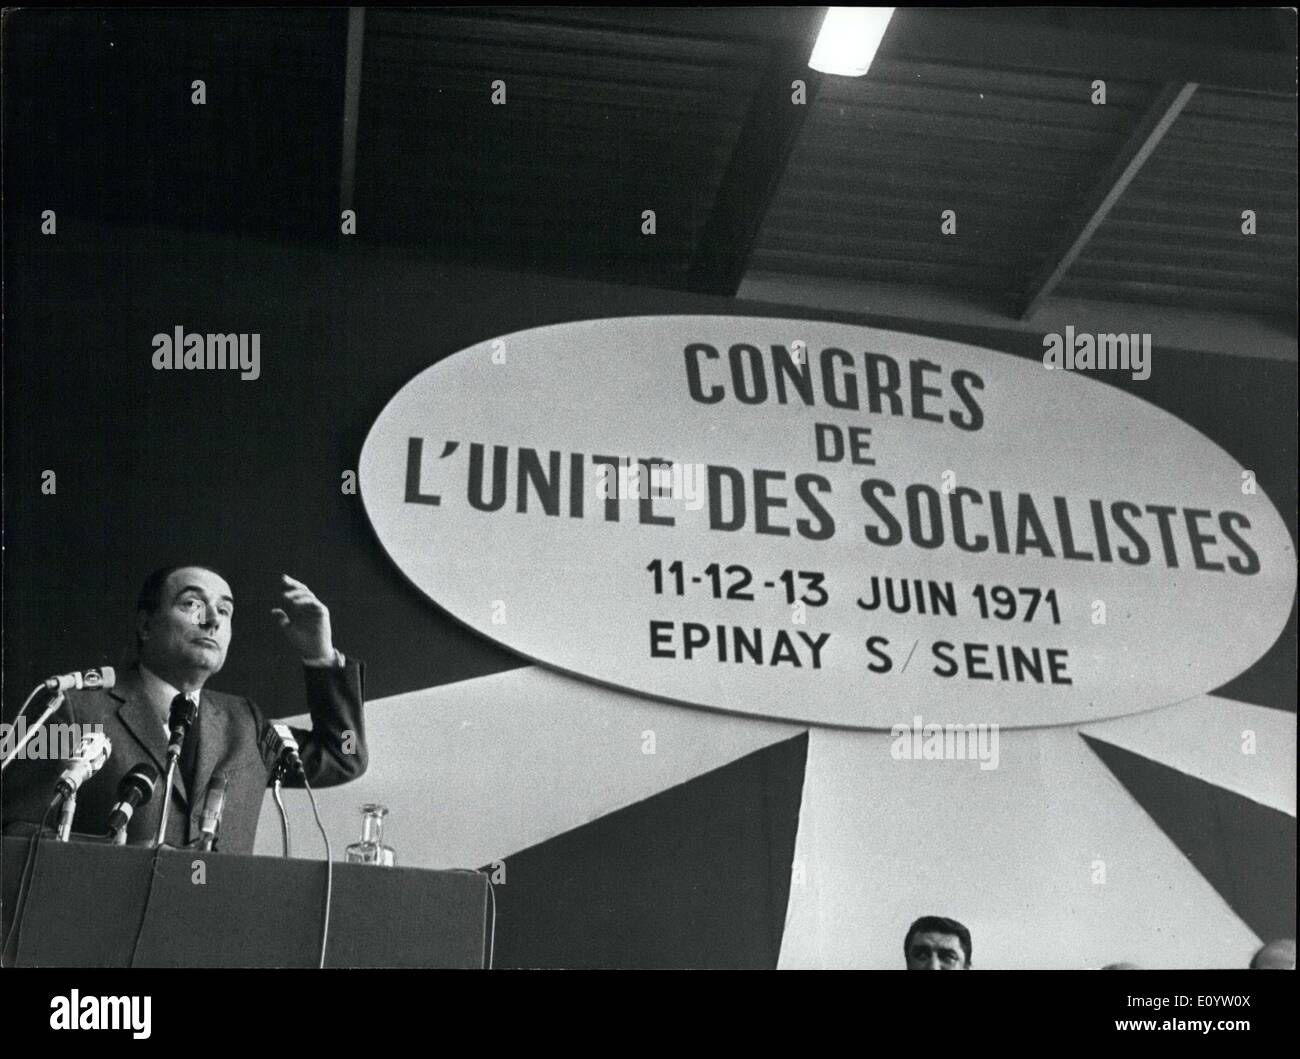 Jun. 13, 1971 - He is at a Unity of Socialists Congress. - Stock Image